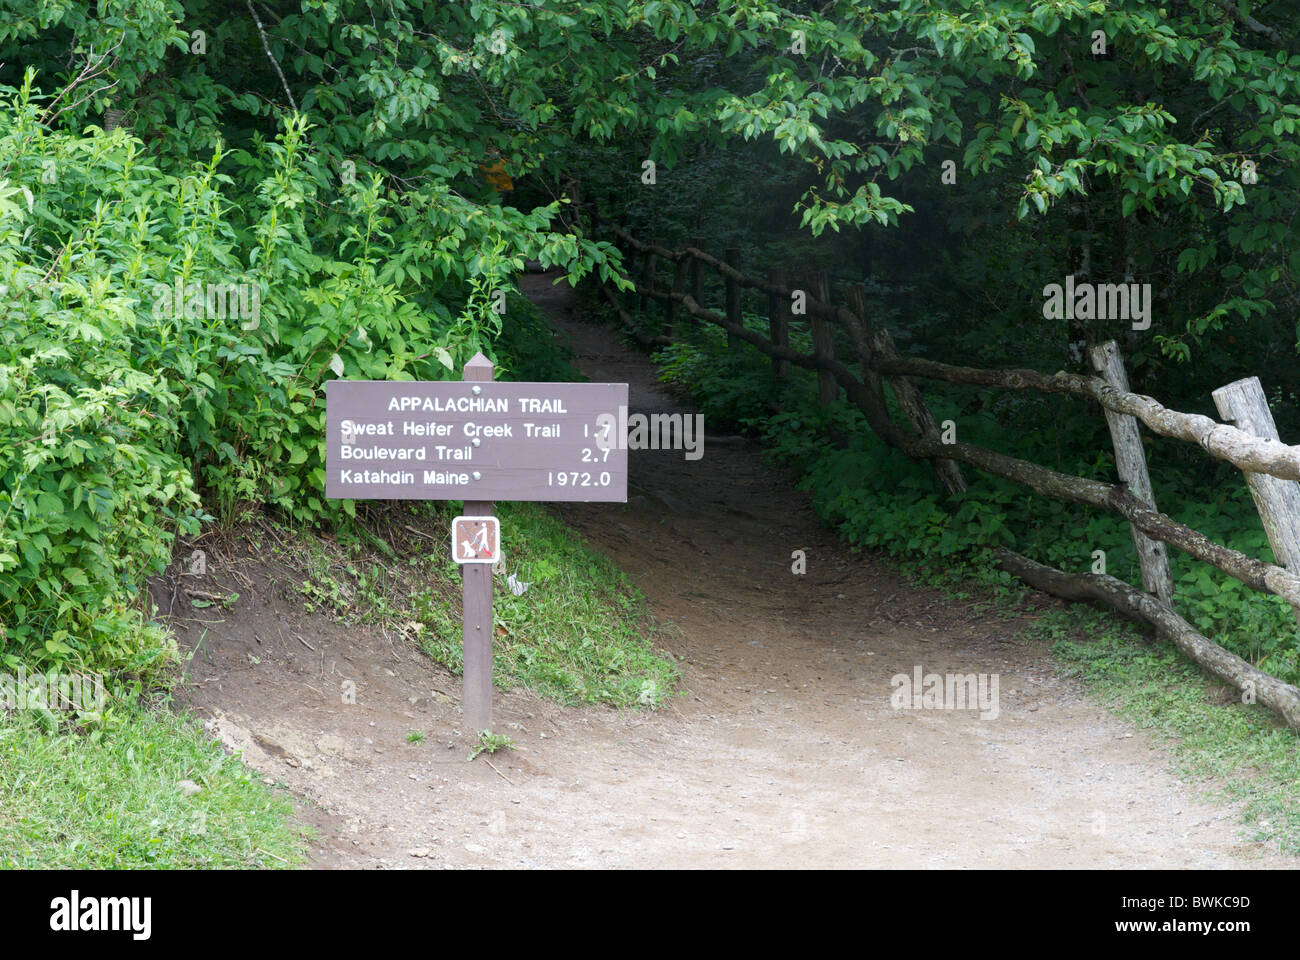 Appalachian trail and sign in Smoky Mountain National Park. Newfound Gap, close to Gatlinburg Tennessee, USA - Stock Image